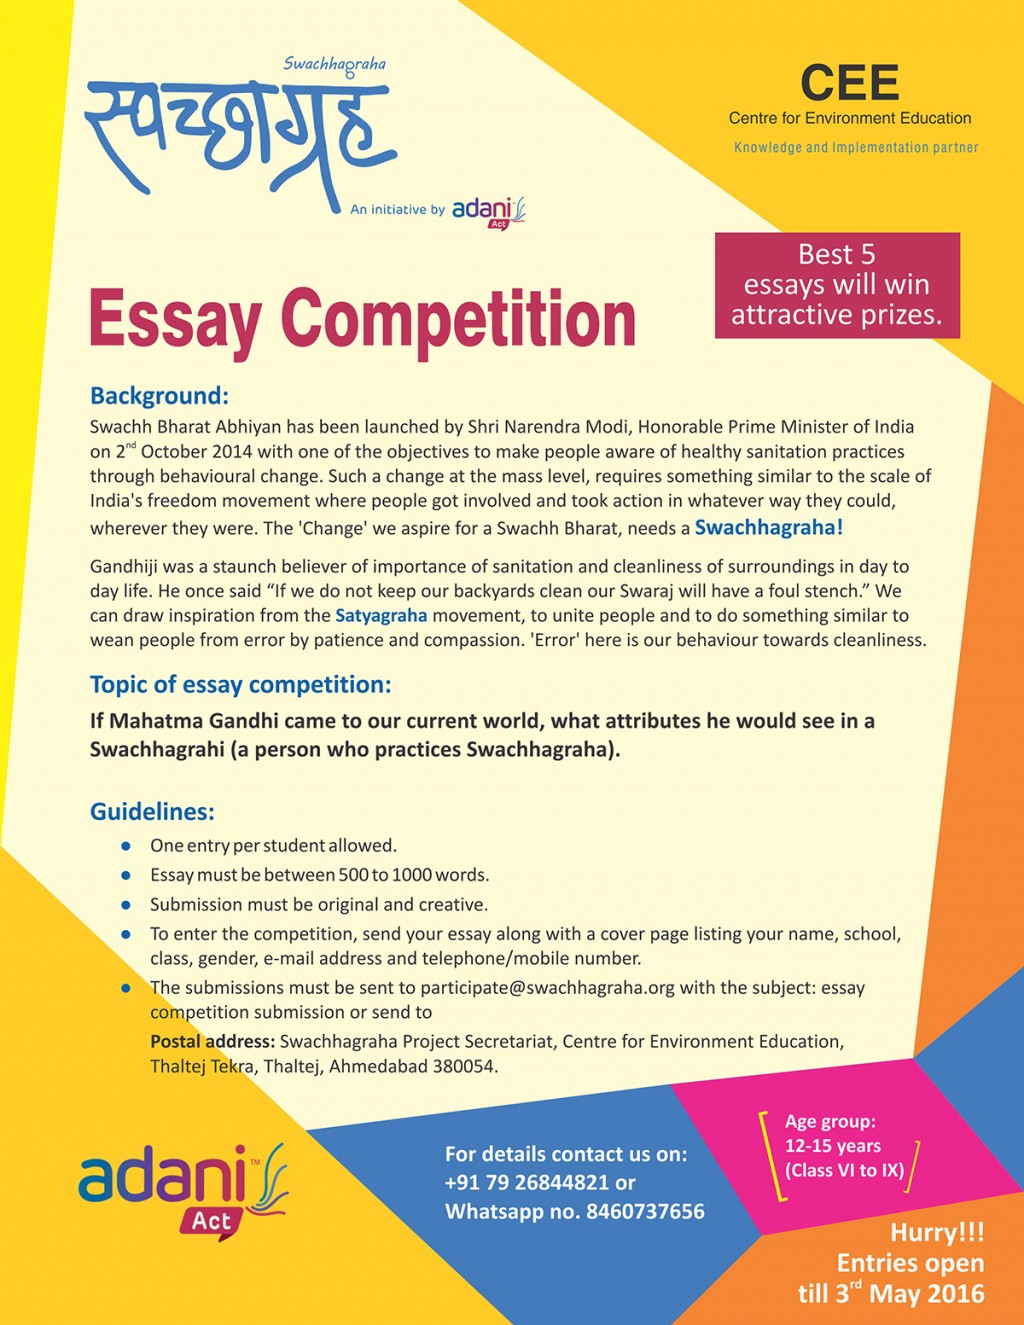 011 20180129171946essay20competition Essay About Cleanliness In School Phenomenal On Premises Persuasive Toilets Large